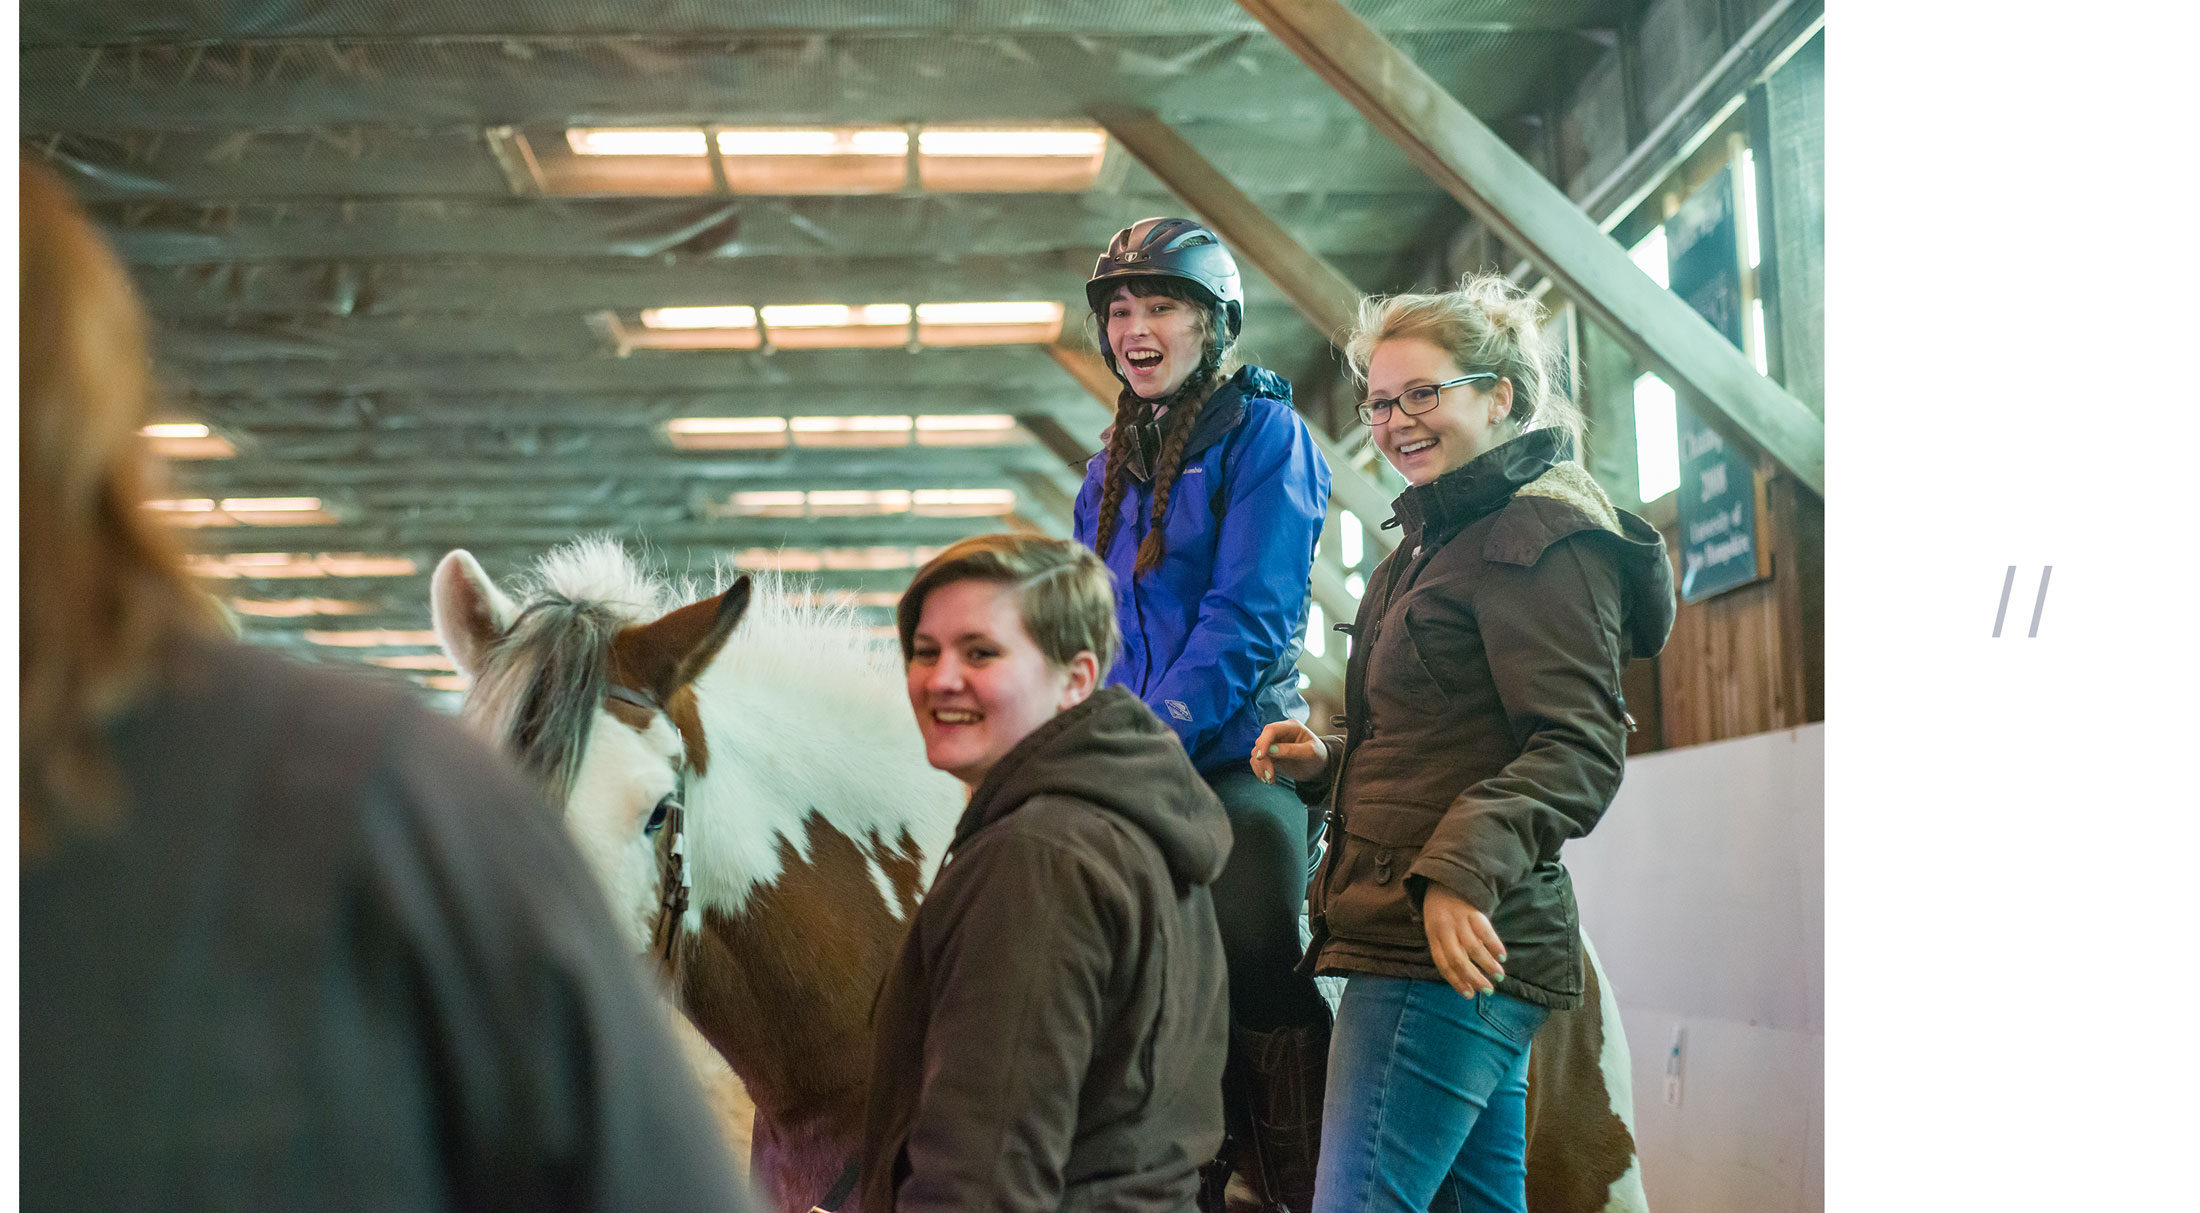 Loren-Marple_Photography_UNH-Equine-Studies_RS58554_LPM_2929_gallery.jpg